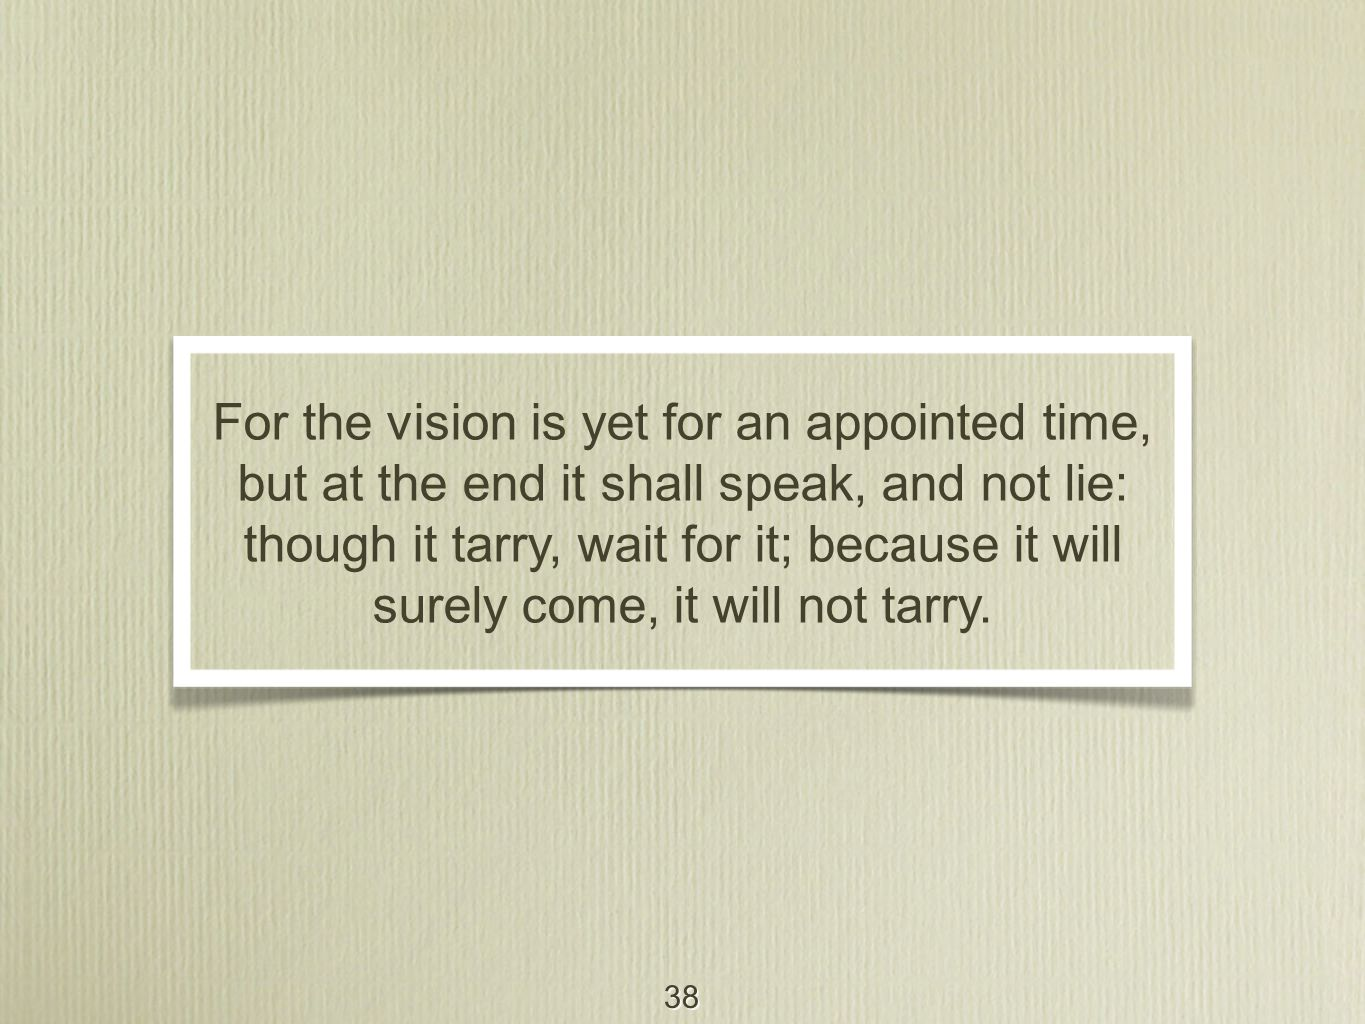 38 For the vision is yet for an appointed time, but at the end it shall speak, and not lie: though it tarry, wait for it; because it will surely come,